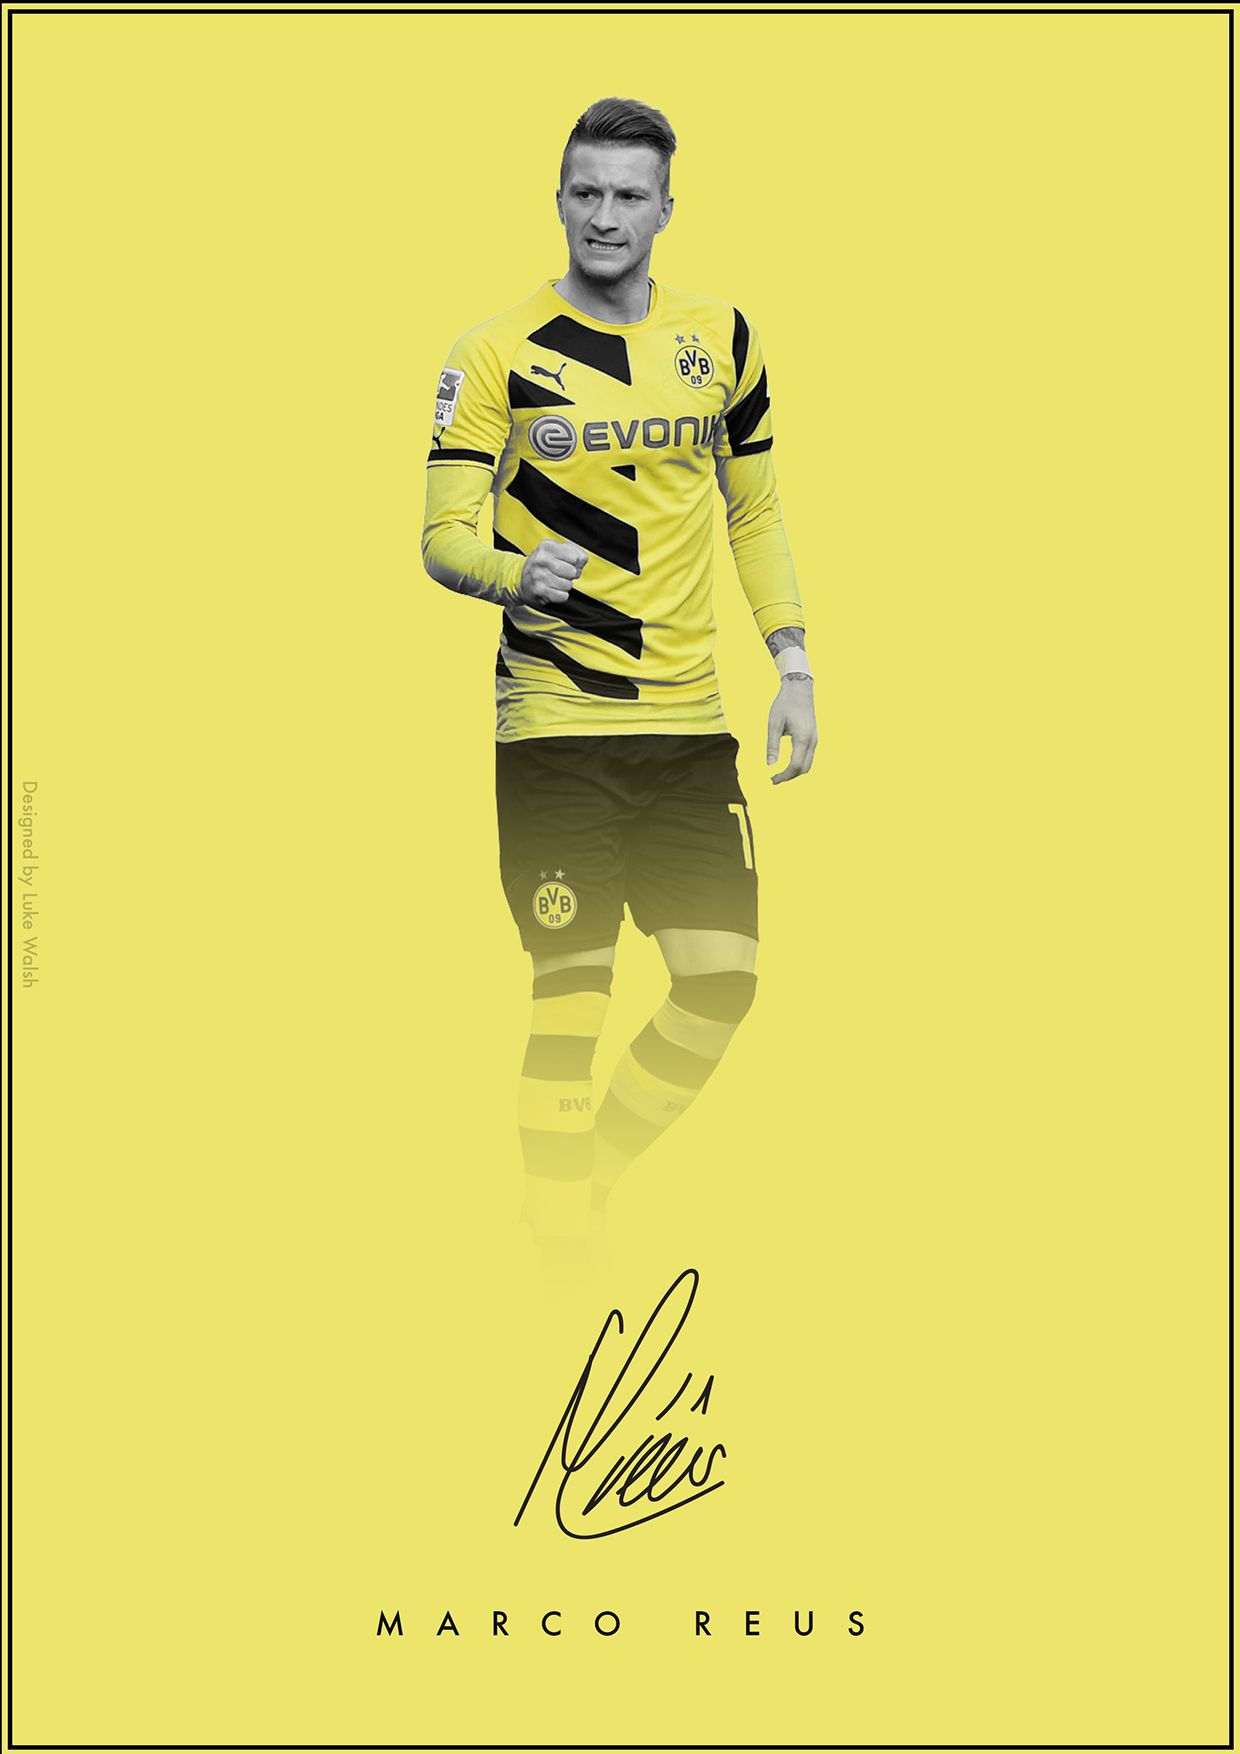 Dybala Soccer For Life Wallpaper Quotes The Signature Series On Behance Marco Reus Borussia